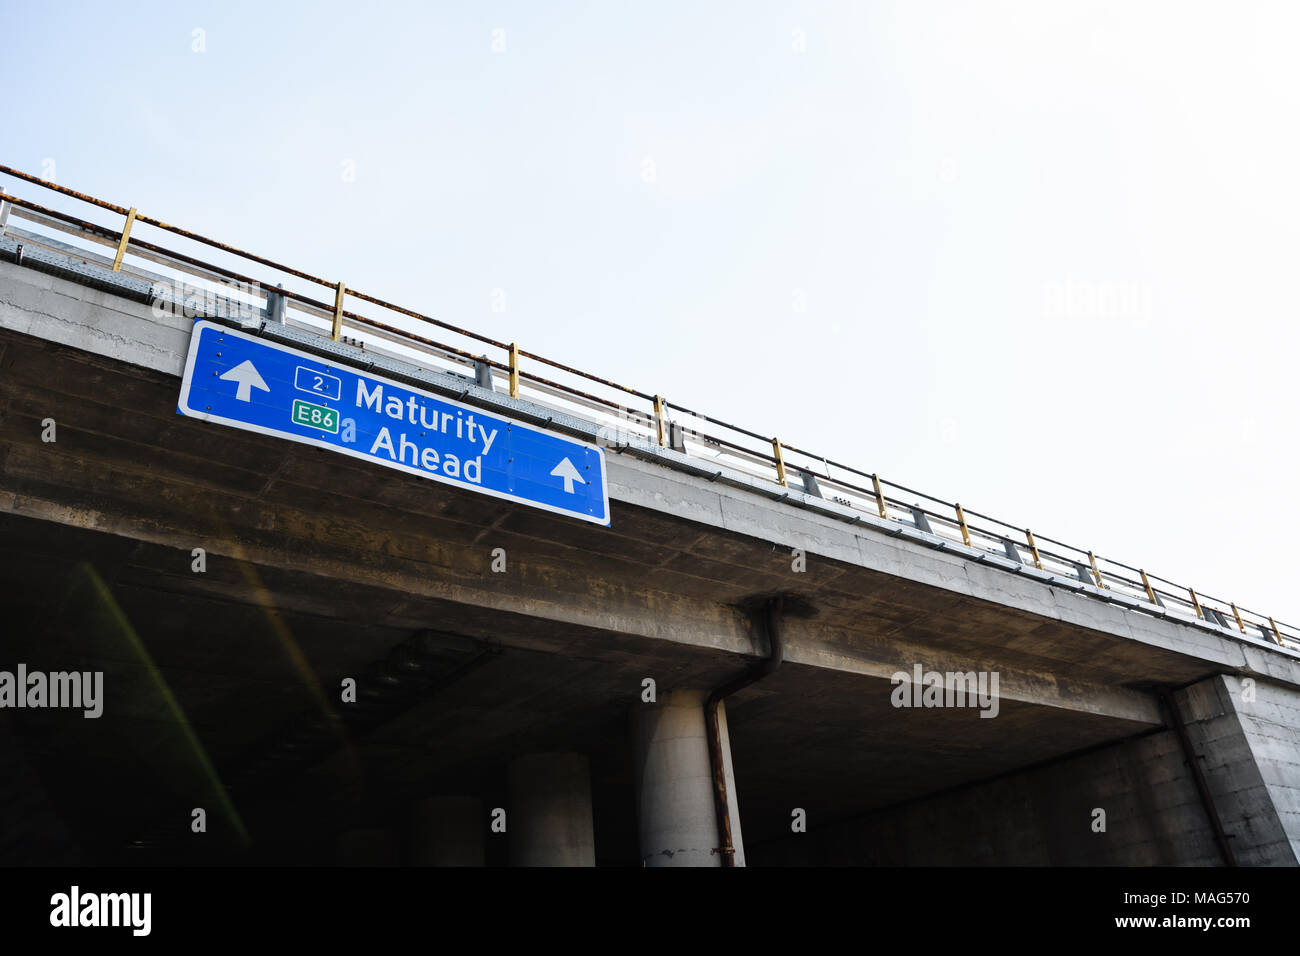 Maturity Ahead Blue Road Sign Against Clear Sky - Stock Image